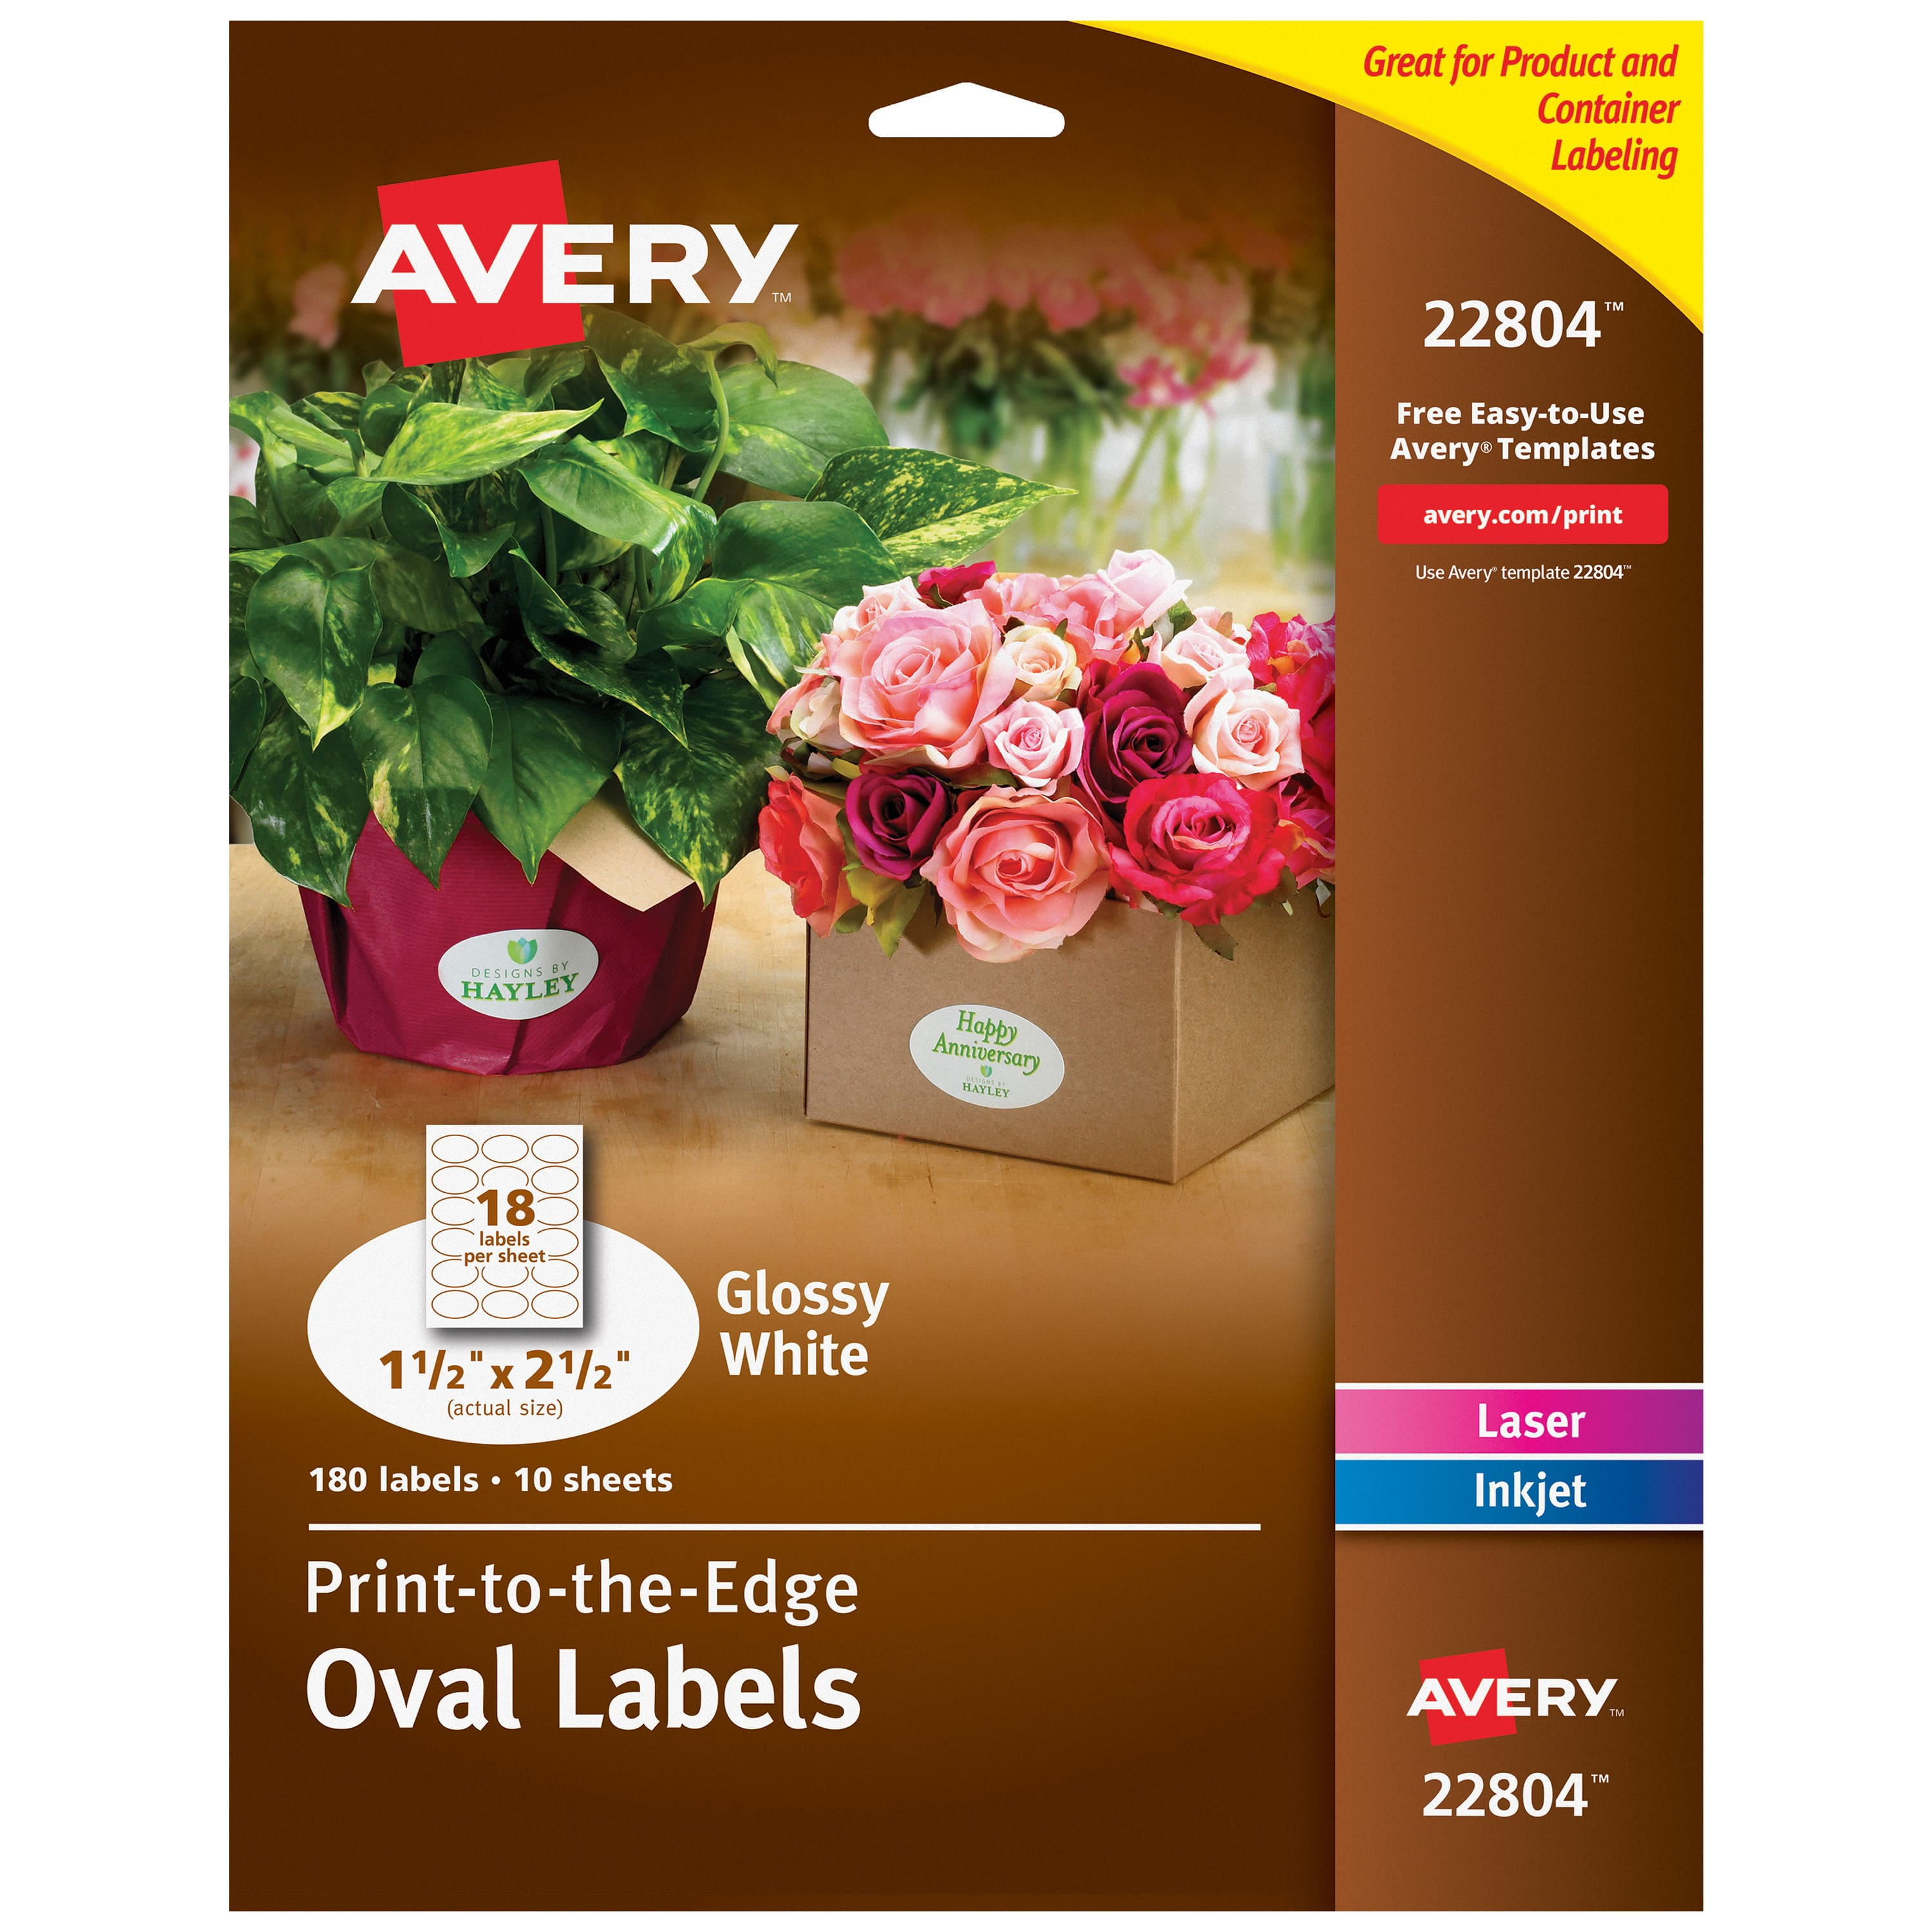 photograph about Printable Labels Walmart called Avery Oval Labels, 1.5\